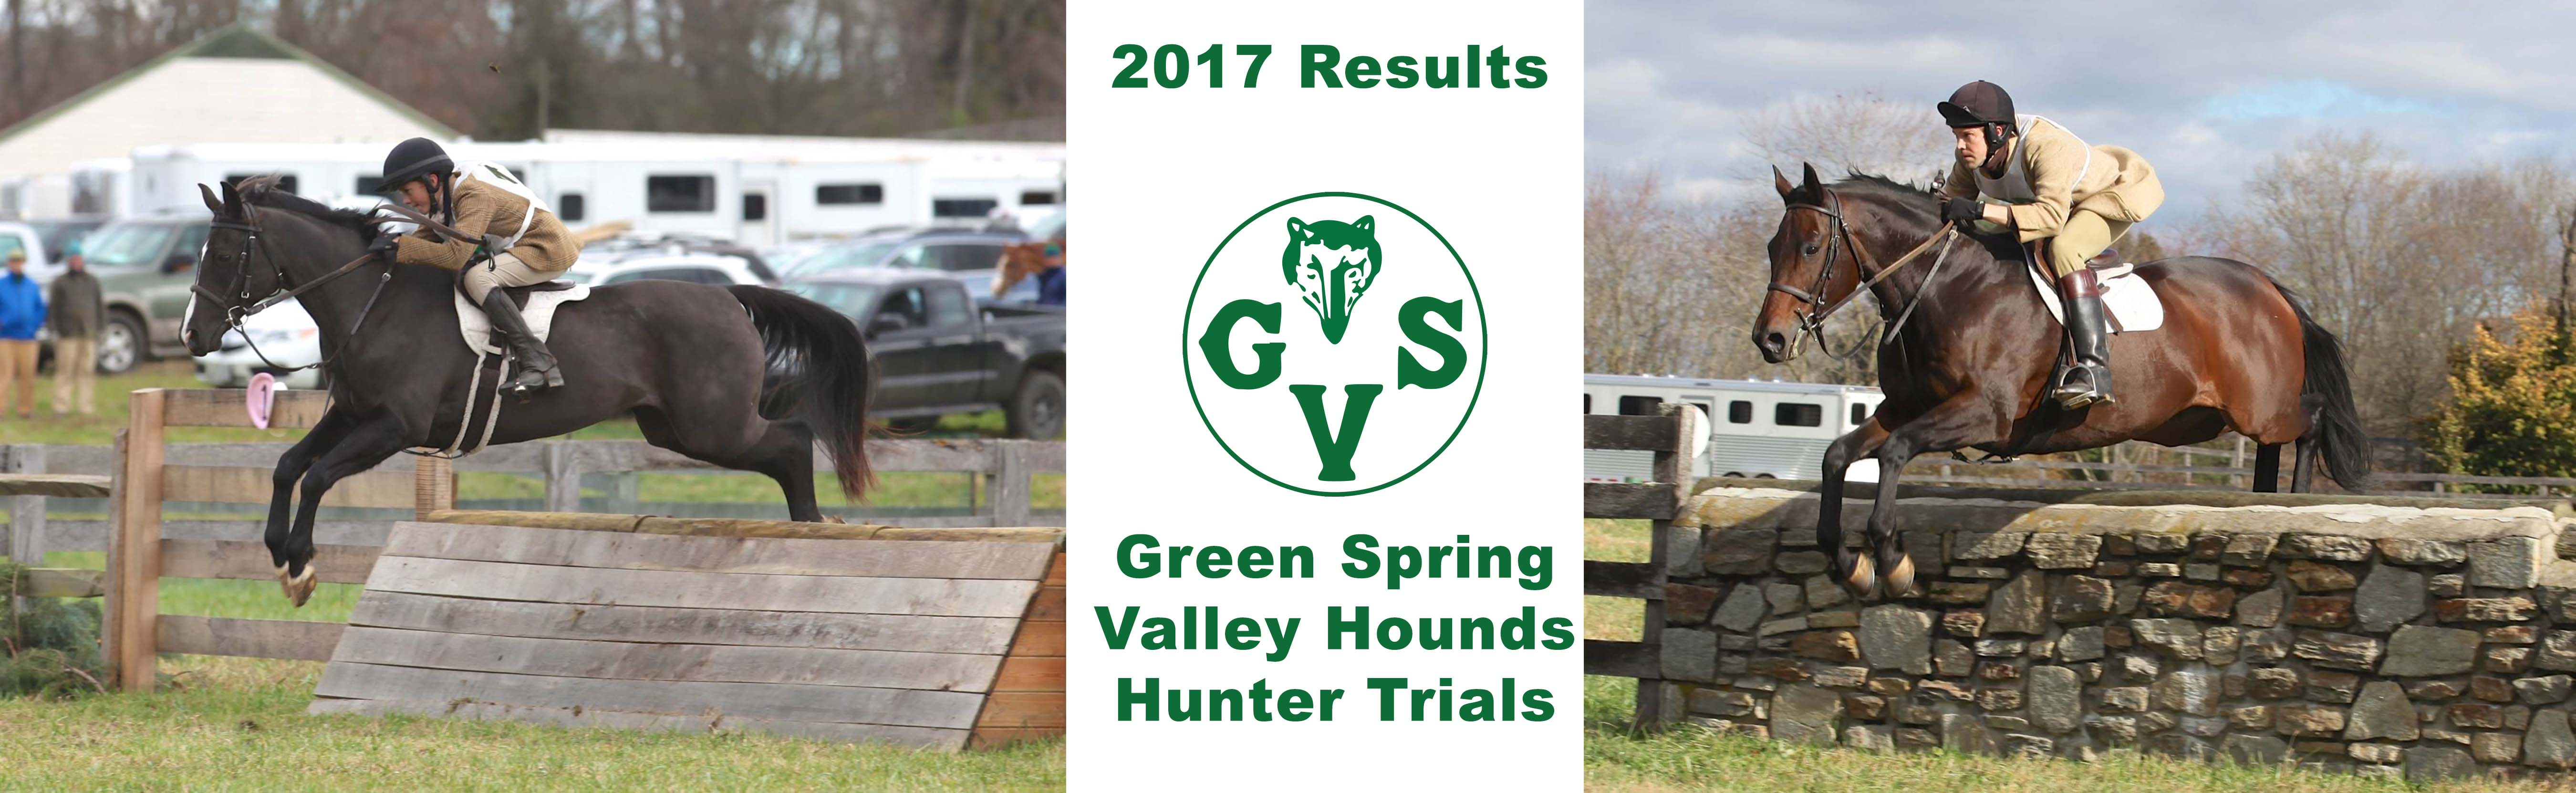 huntertrials2017 Results copy